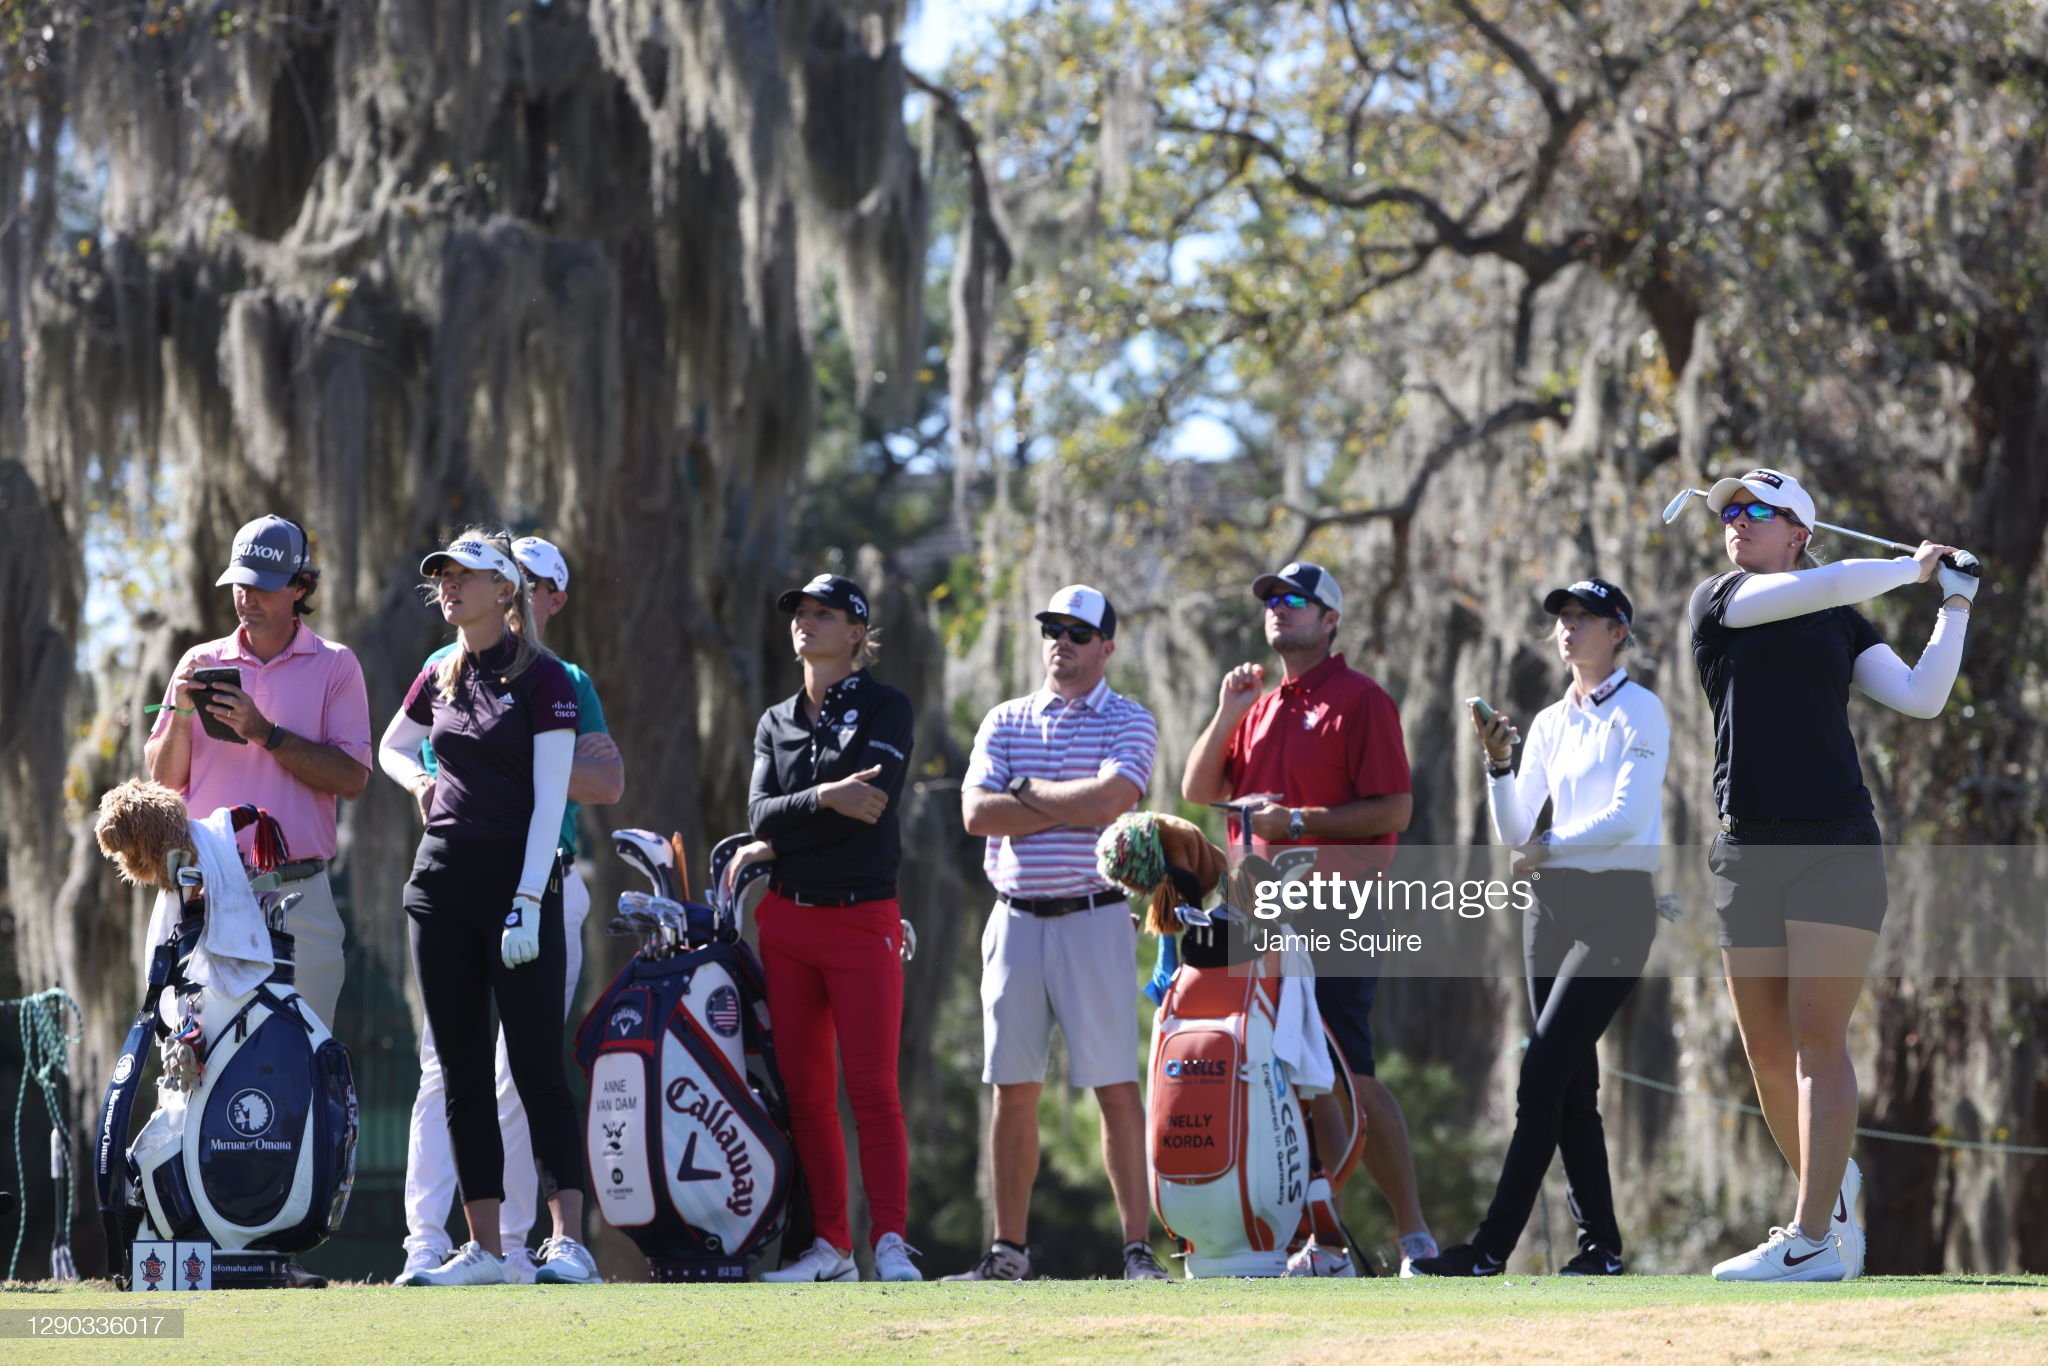 https://media.gettyimages.com/photos/jodi-ewart-shadoff-of-england-hits-a-tee-shot-on-the-16th-hole-during-picture-id1290336017?s=2048x2048